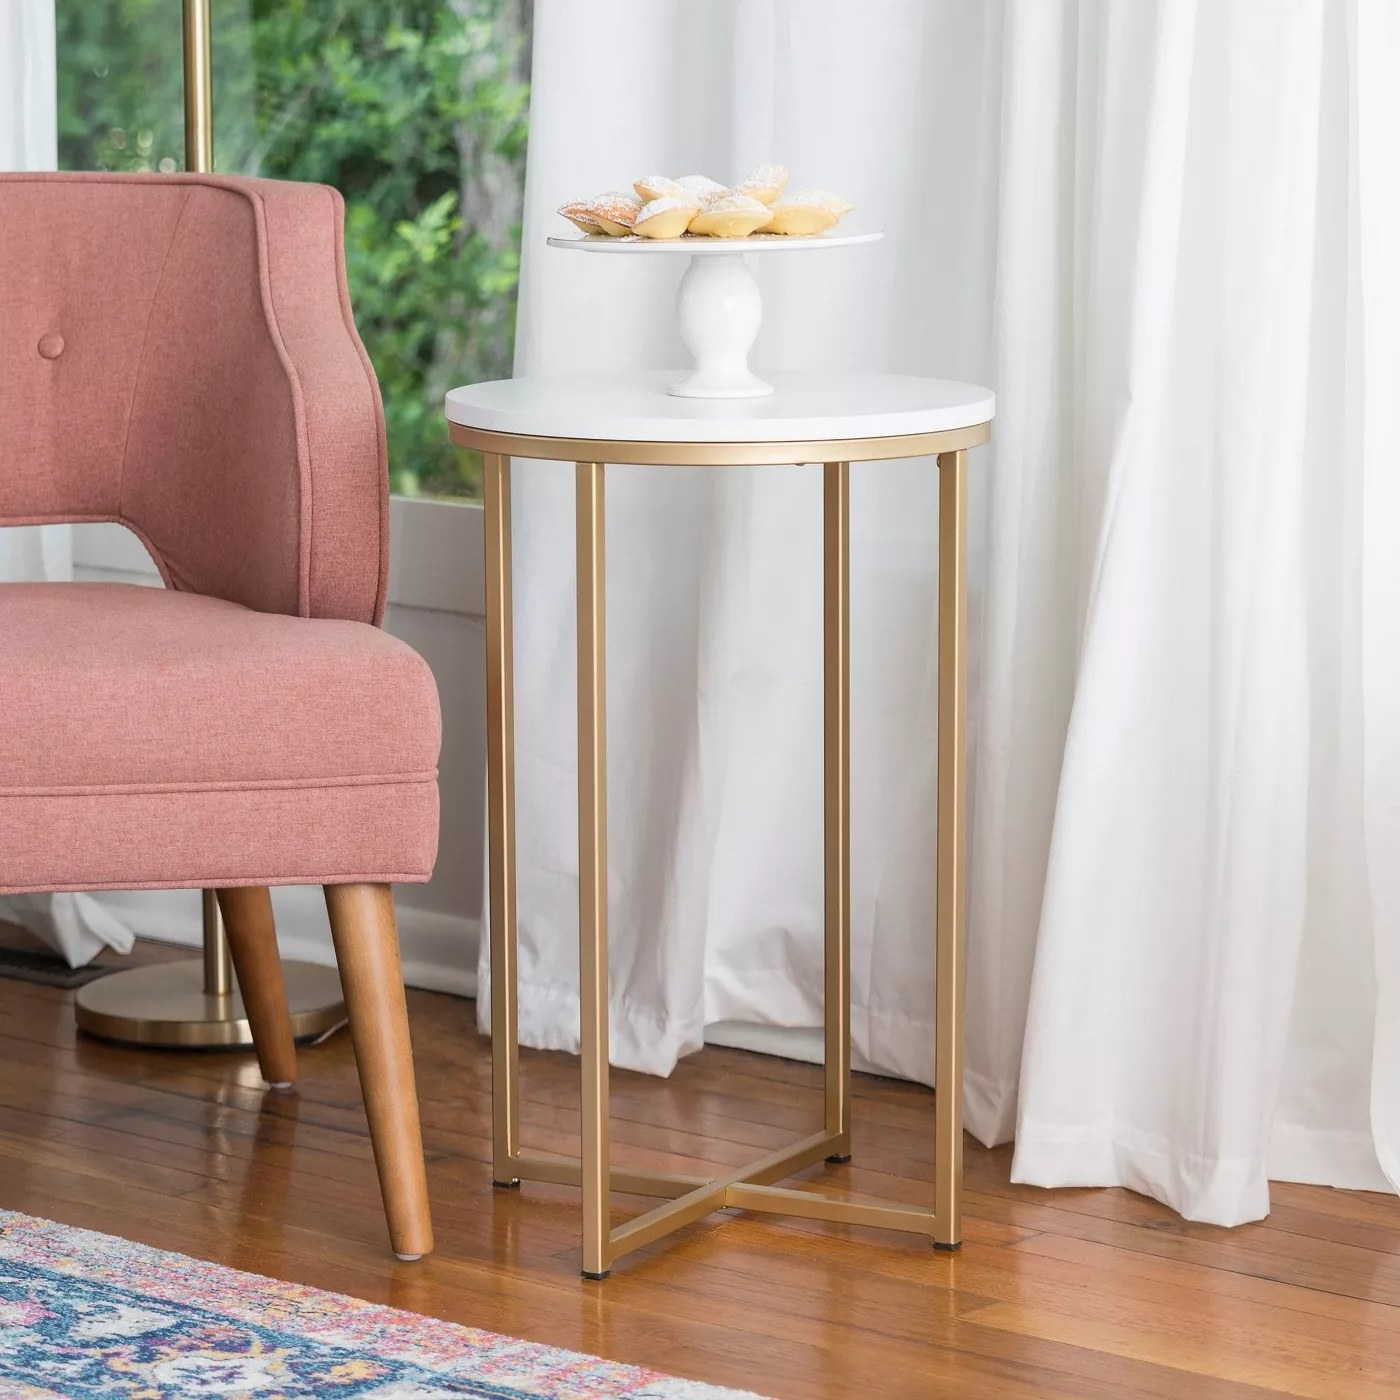 The faux marble and gold side table